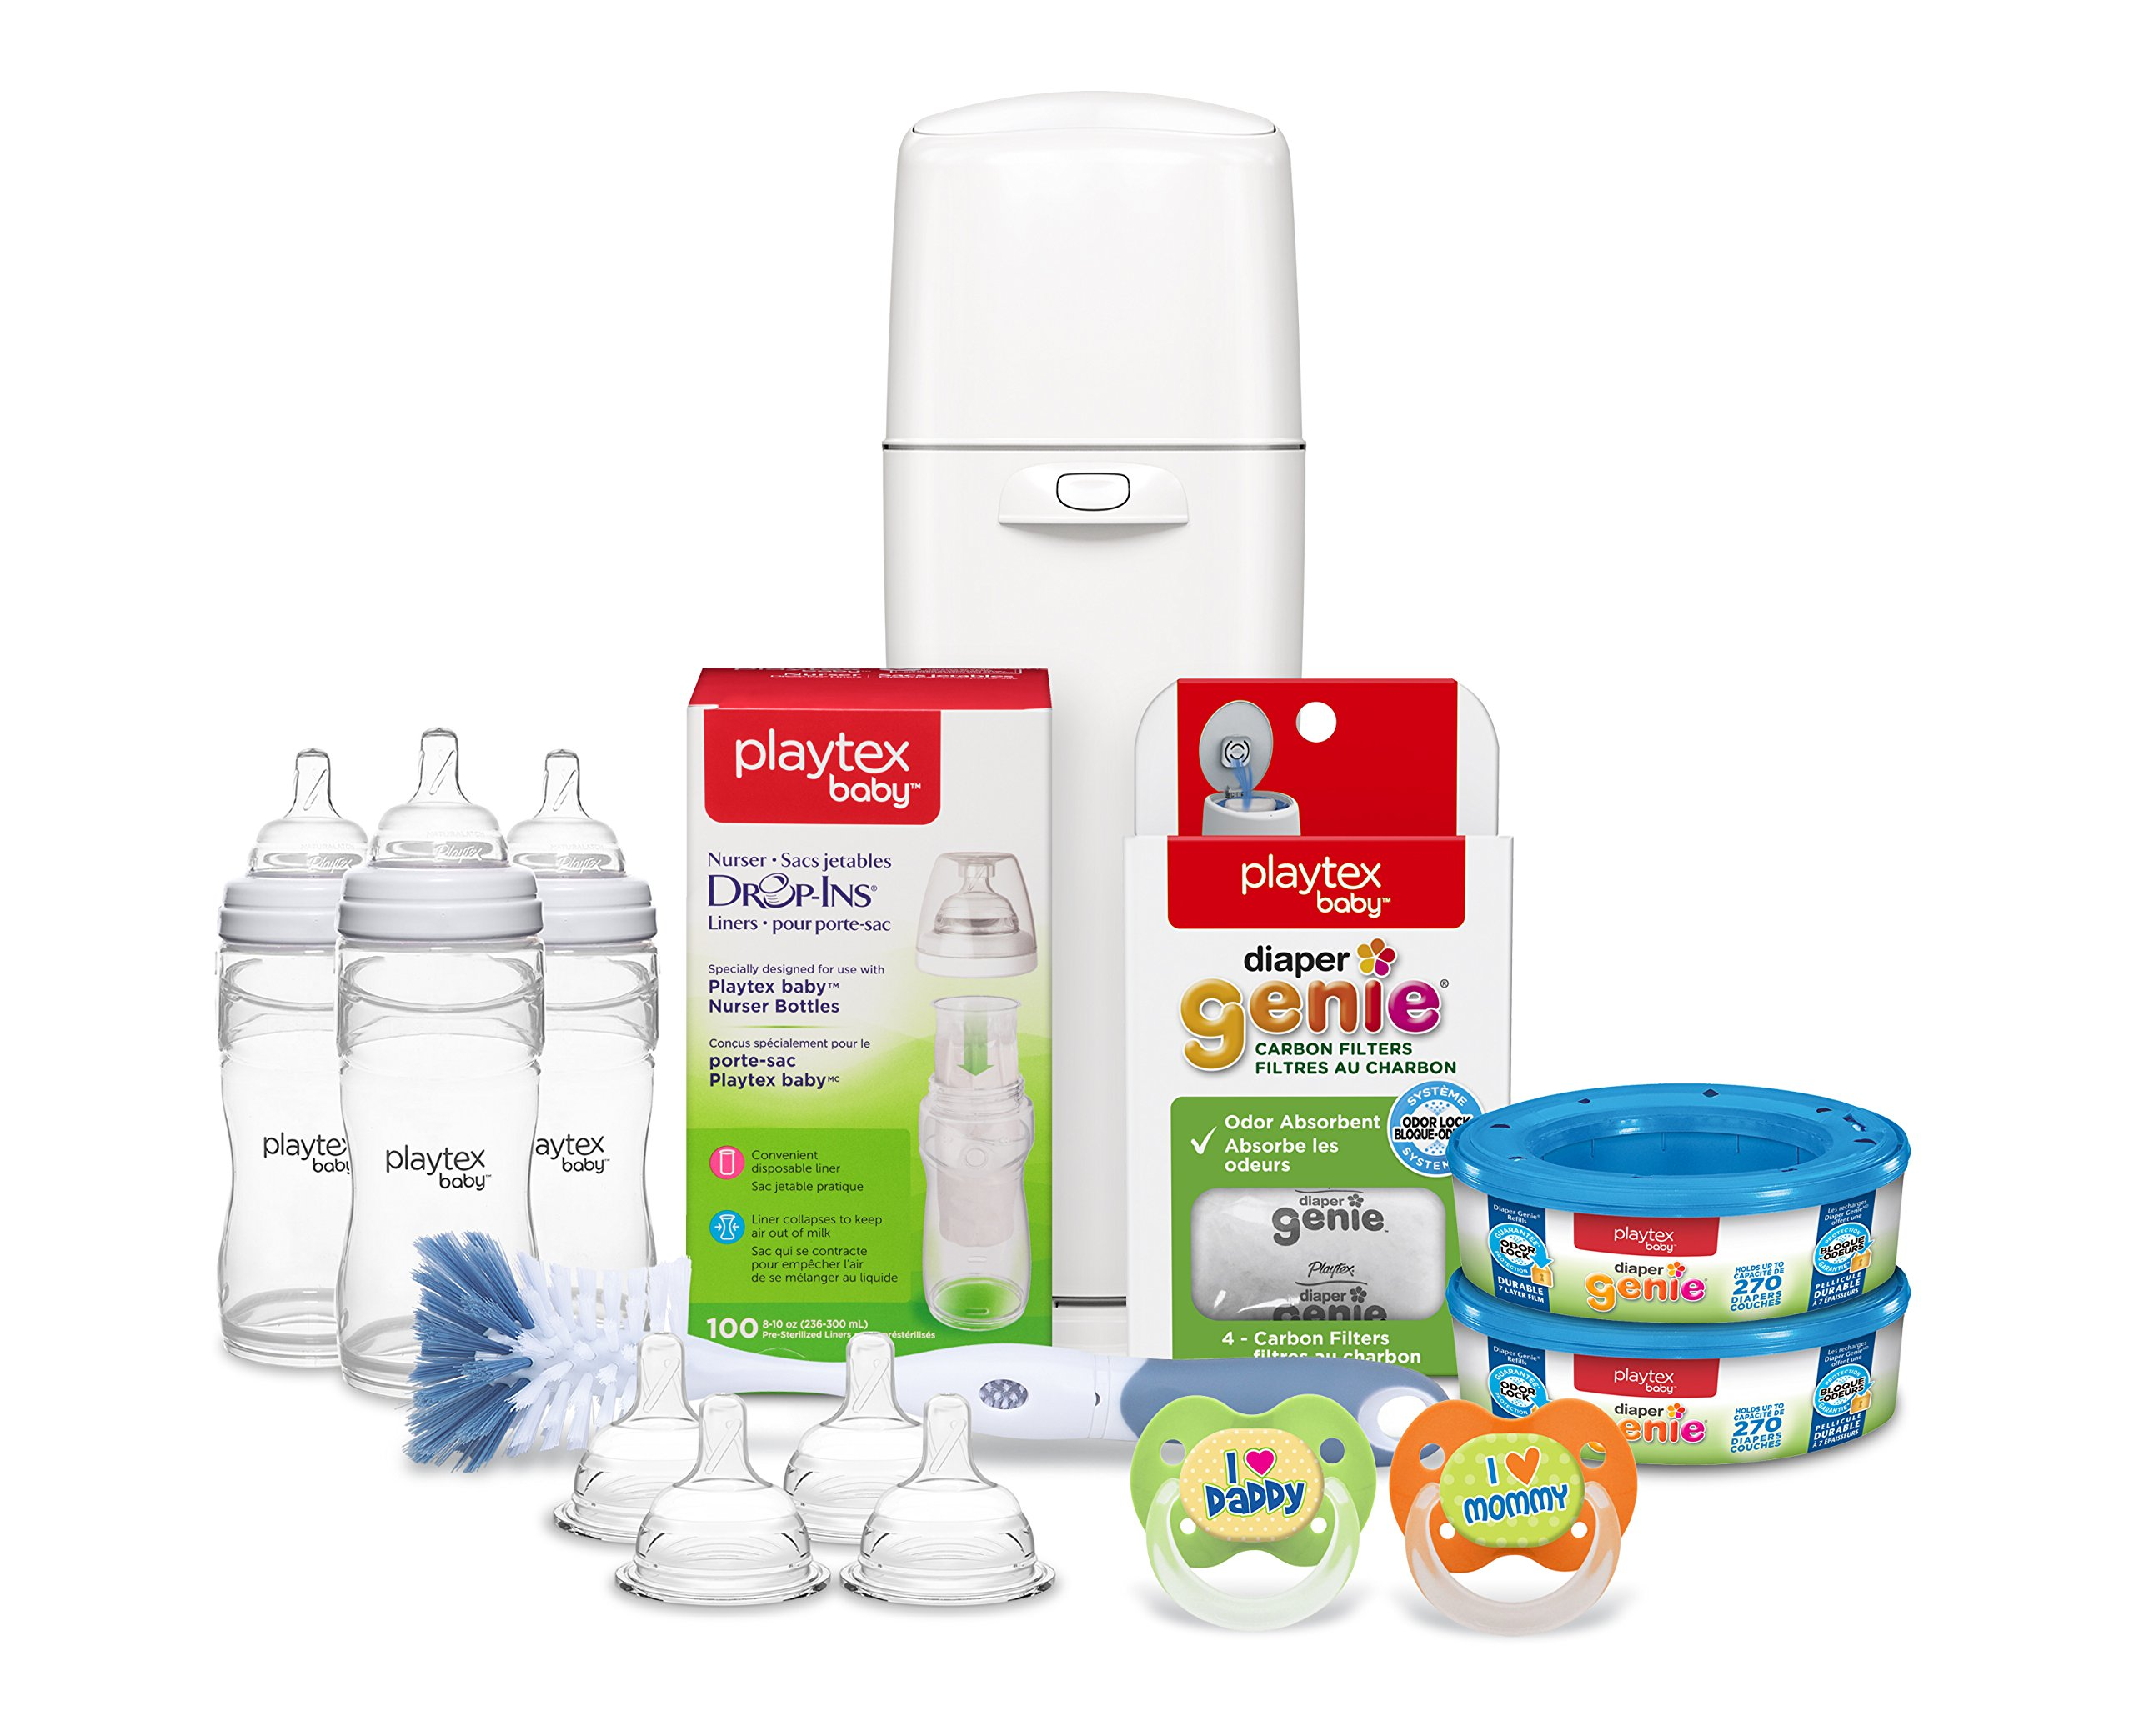 Playtex Baby Diaper Genie Gift Set, Includes Diaper Genie Diaper Pail  and Accessories and Playtex Baby Feeding Supplies - Great for Baby Registry by Playtex